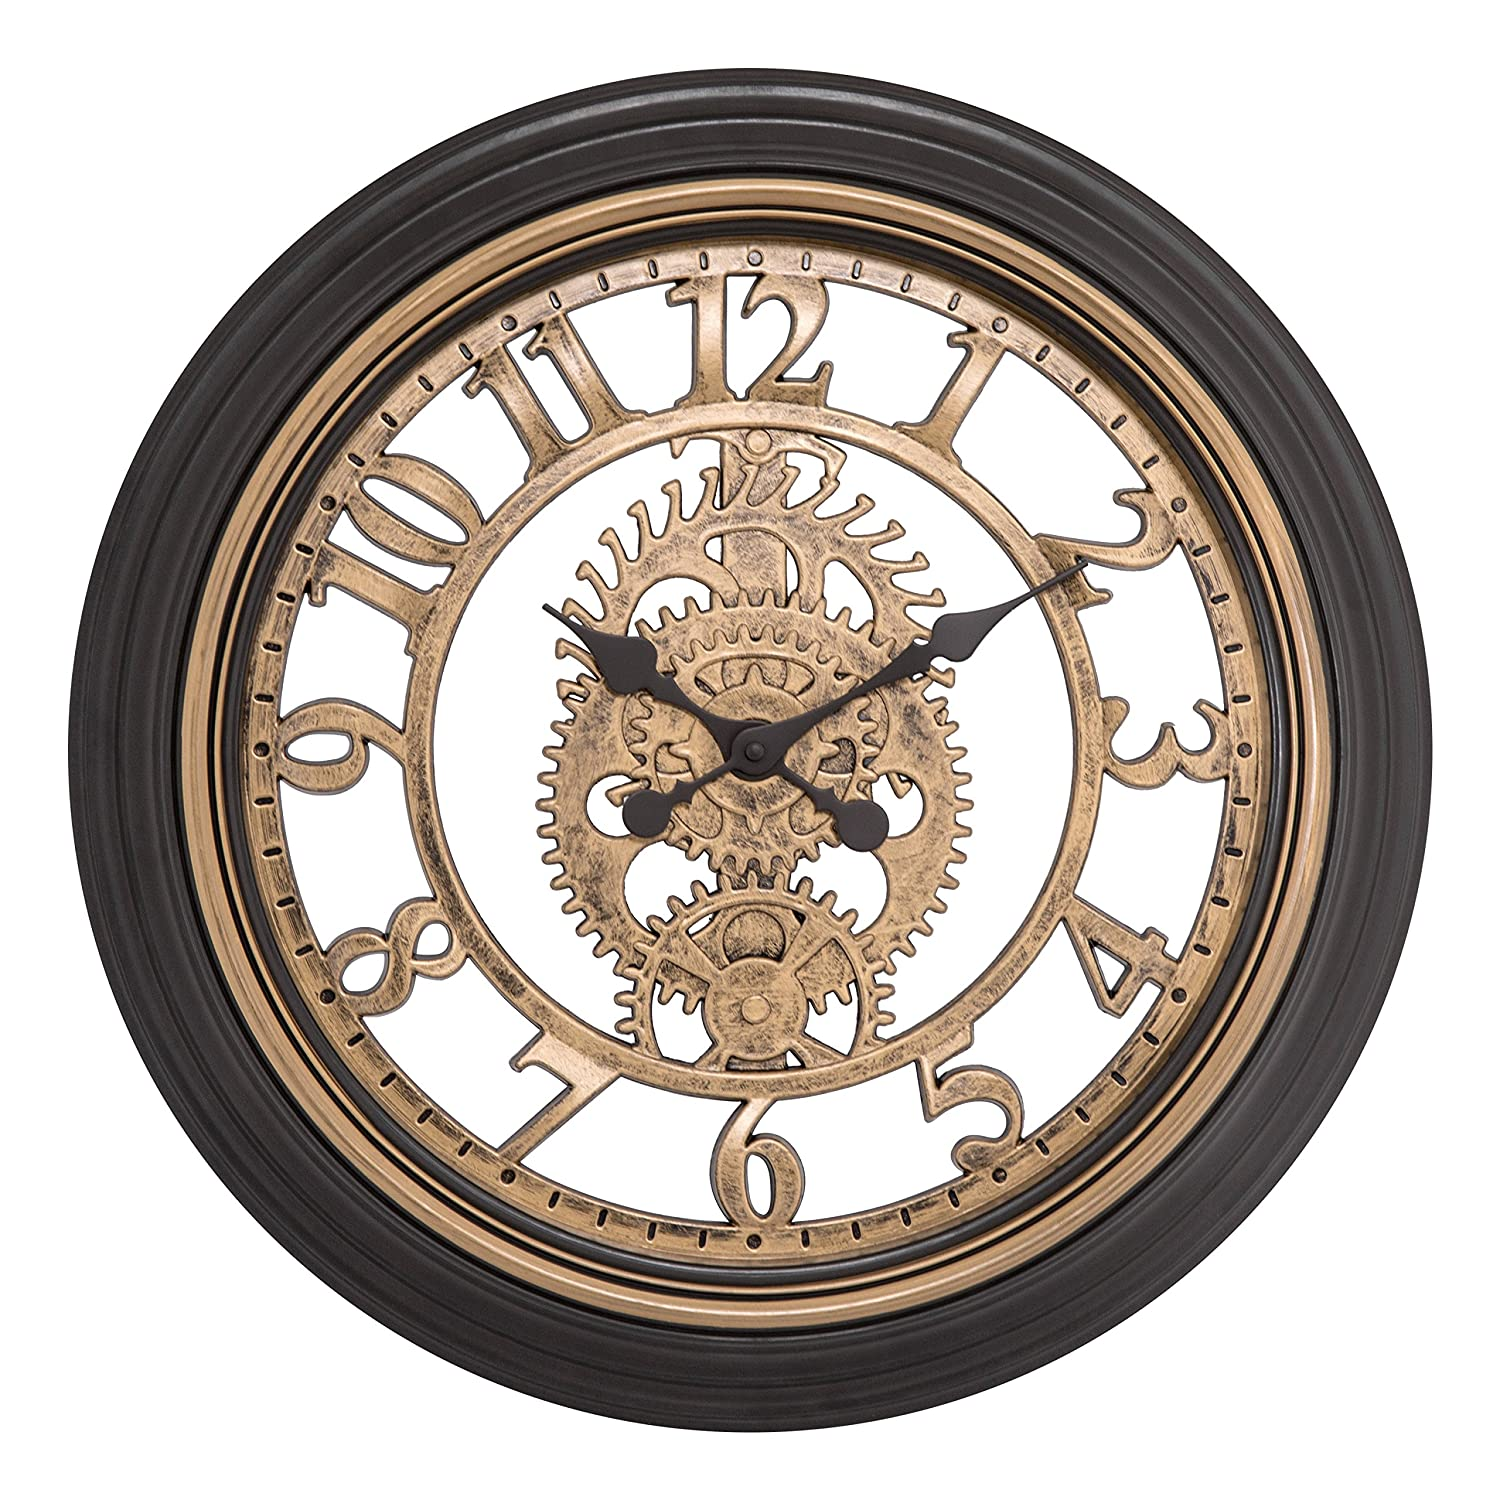 Brown Cut-Out Gears Analog Clock La Crosse Technology Ltd. Equity by La Crosse 86611 20 in